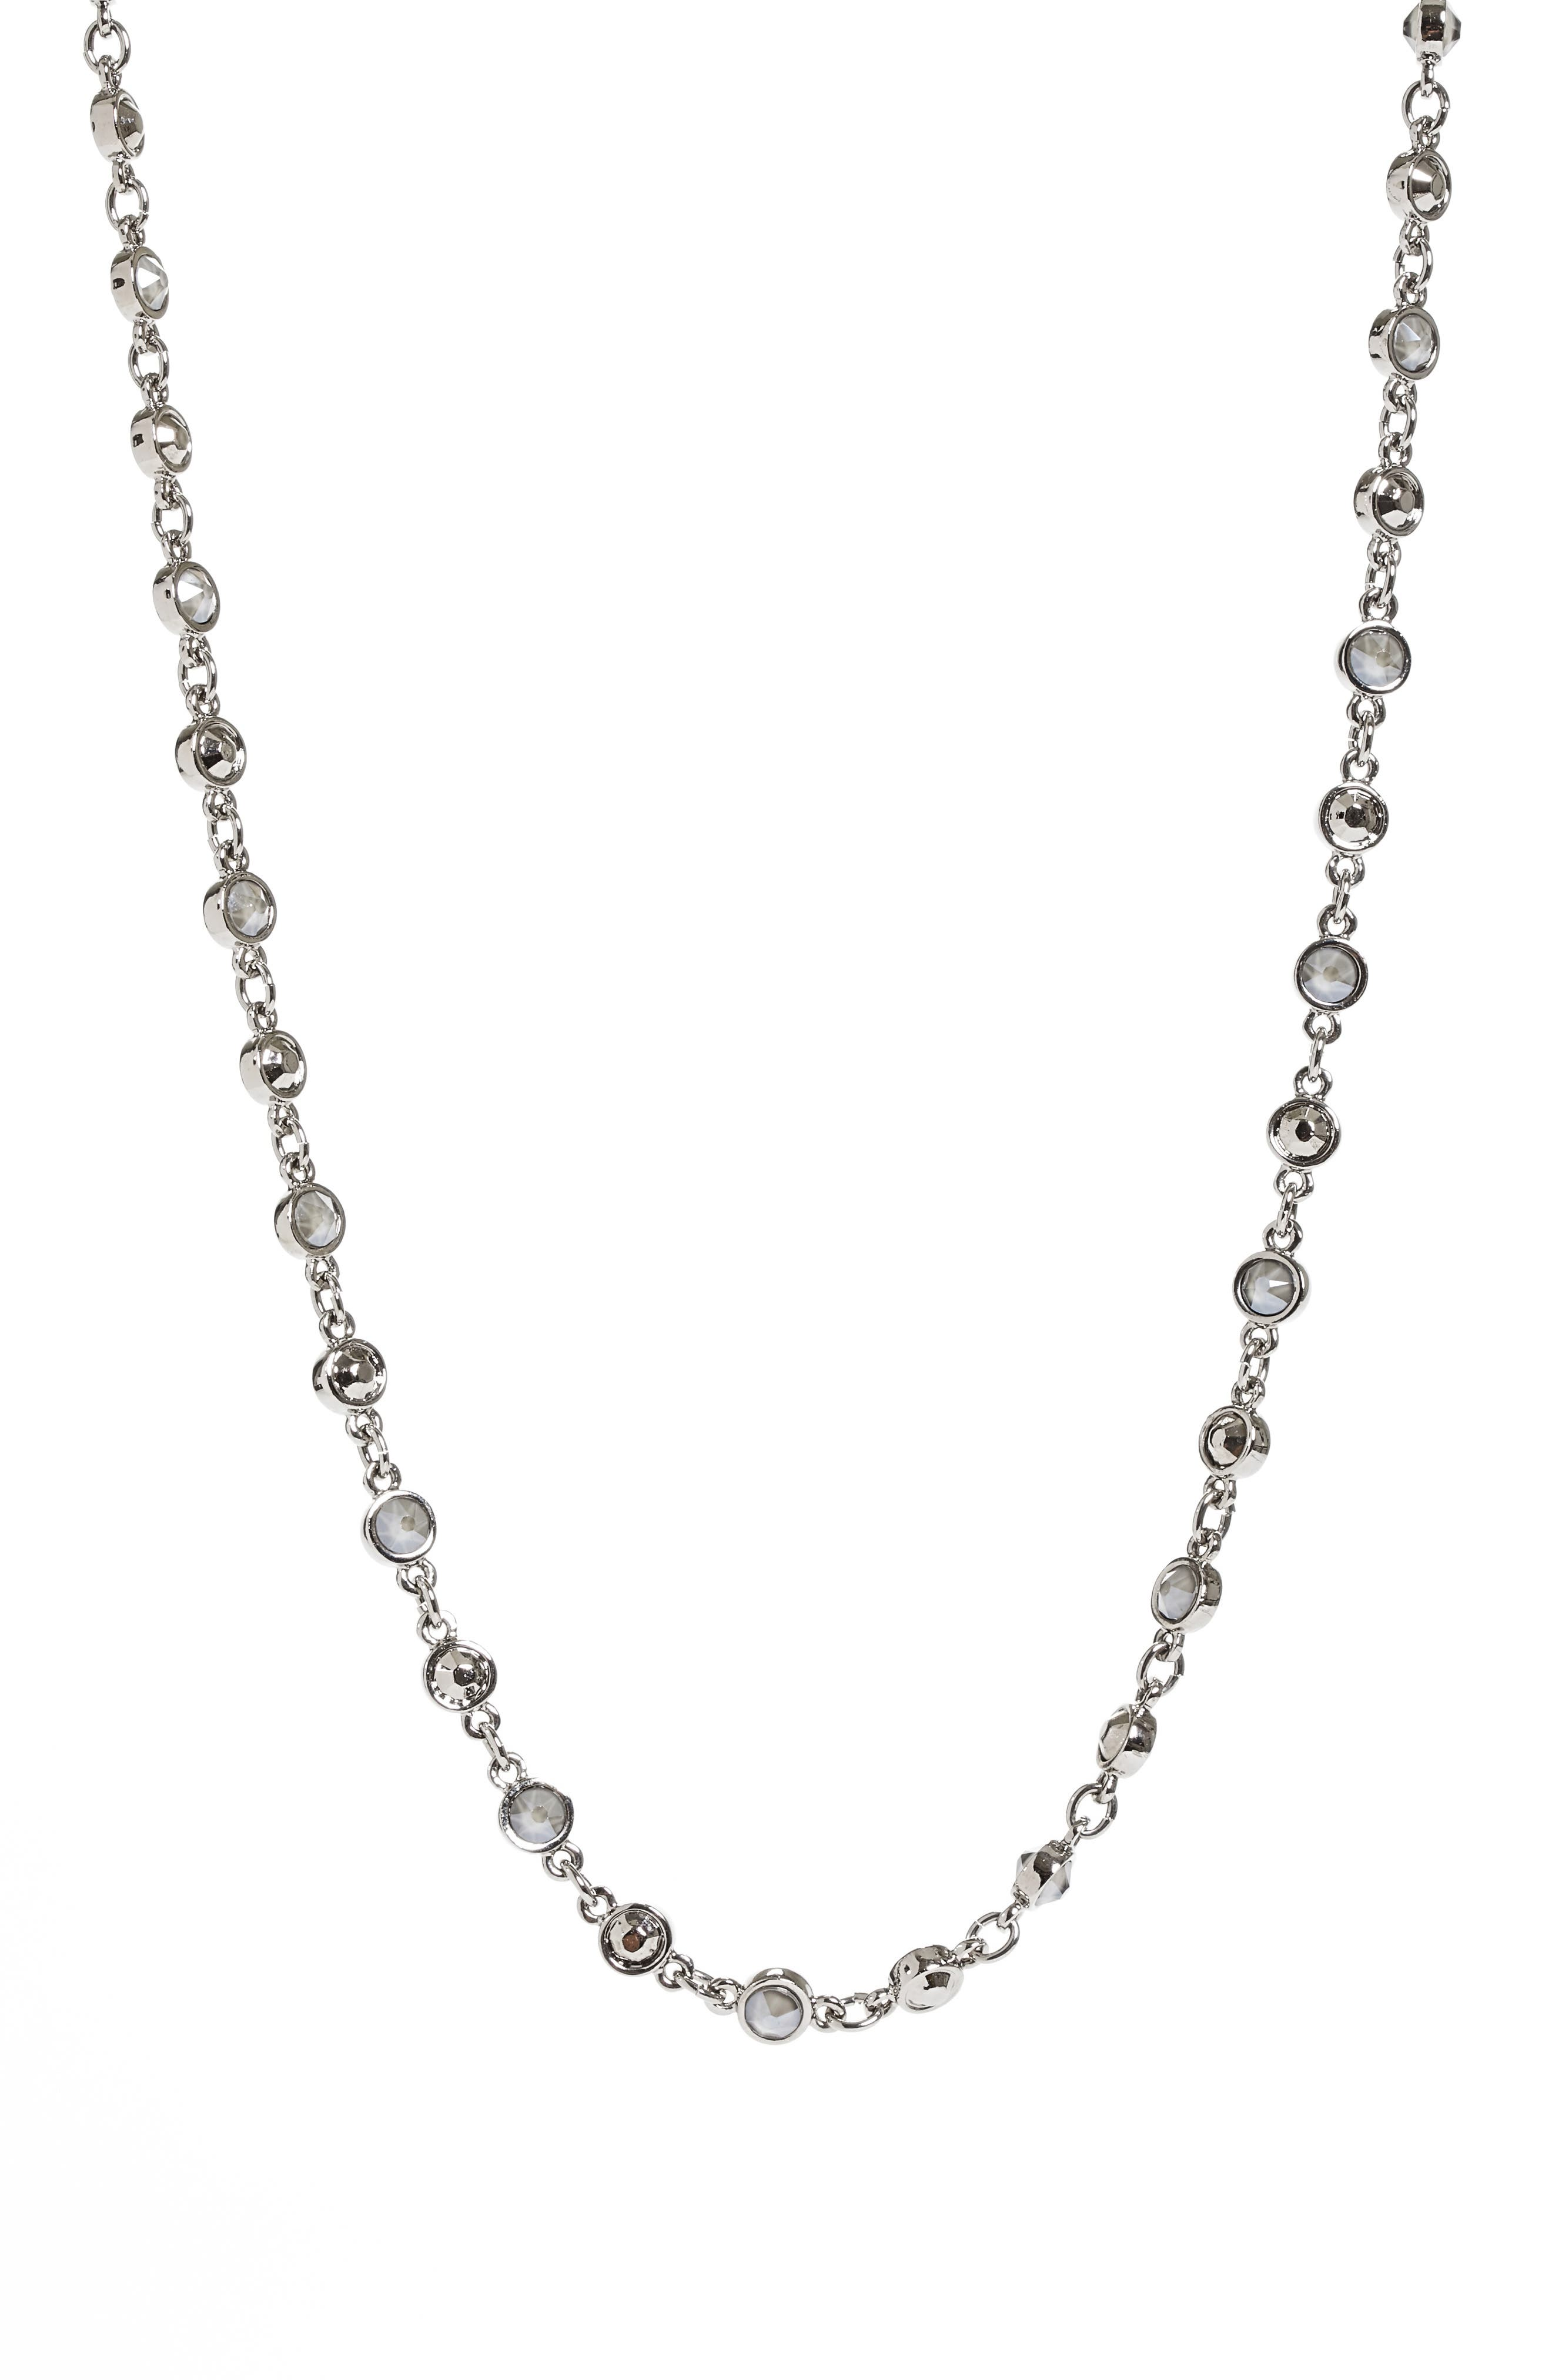 Alternate Image 1 Selected - St. John Collection Swarovski Crystal Chain Necklace